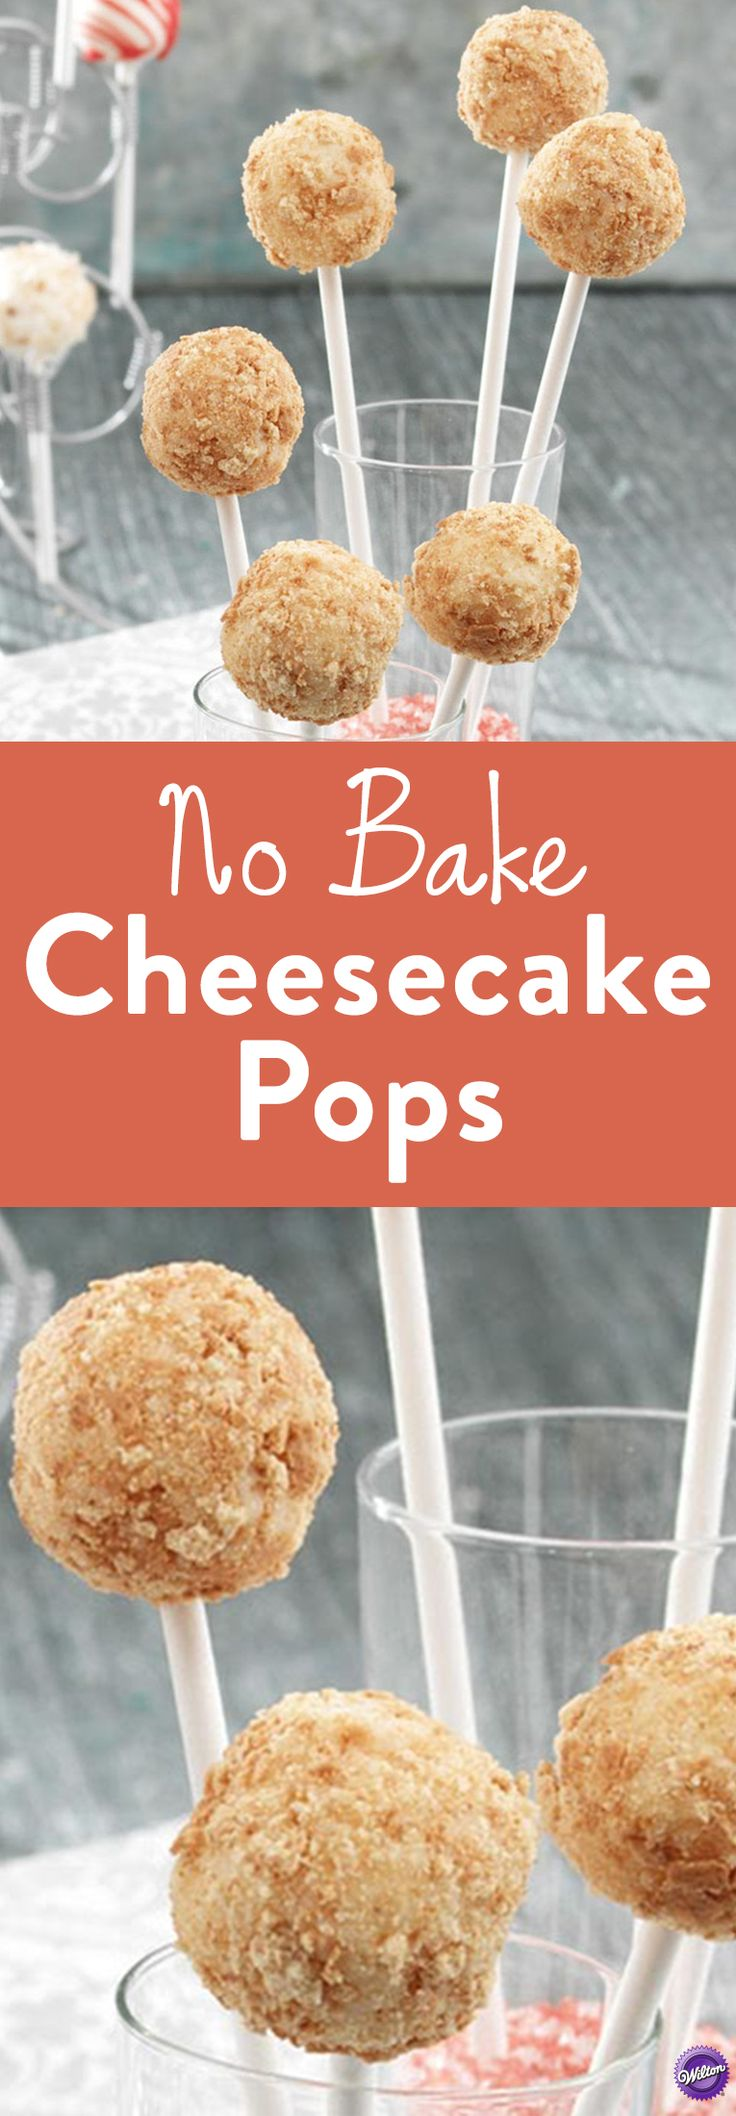 No Bake Cheesecake Pops - Stick it to 'em with Cheesecake Pops! Each tasty treat of these No Bake Cheesecake Pops is rolled in graham crackers and positioned on a lollipop stick to make a unique presentation for your dessert table or buffet. They are a tasty and easy treat to serve at your next gathering!